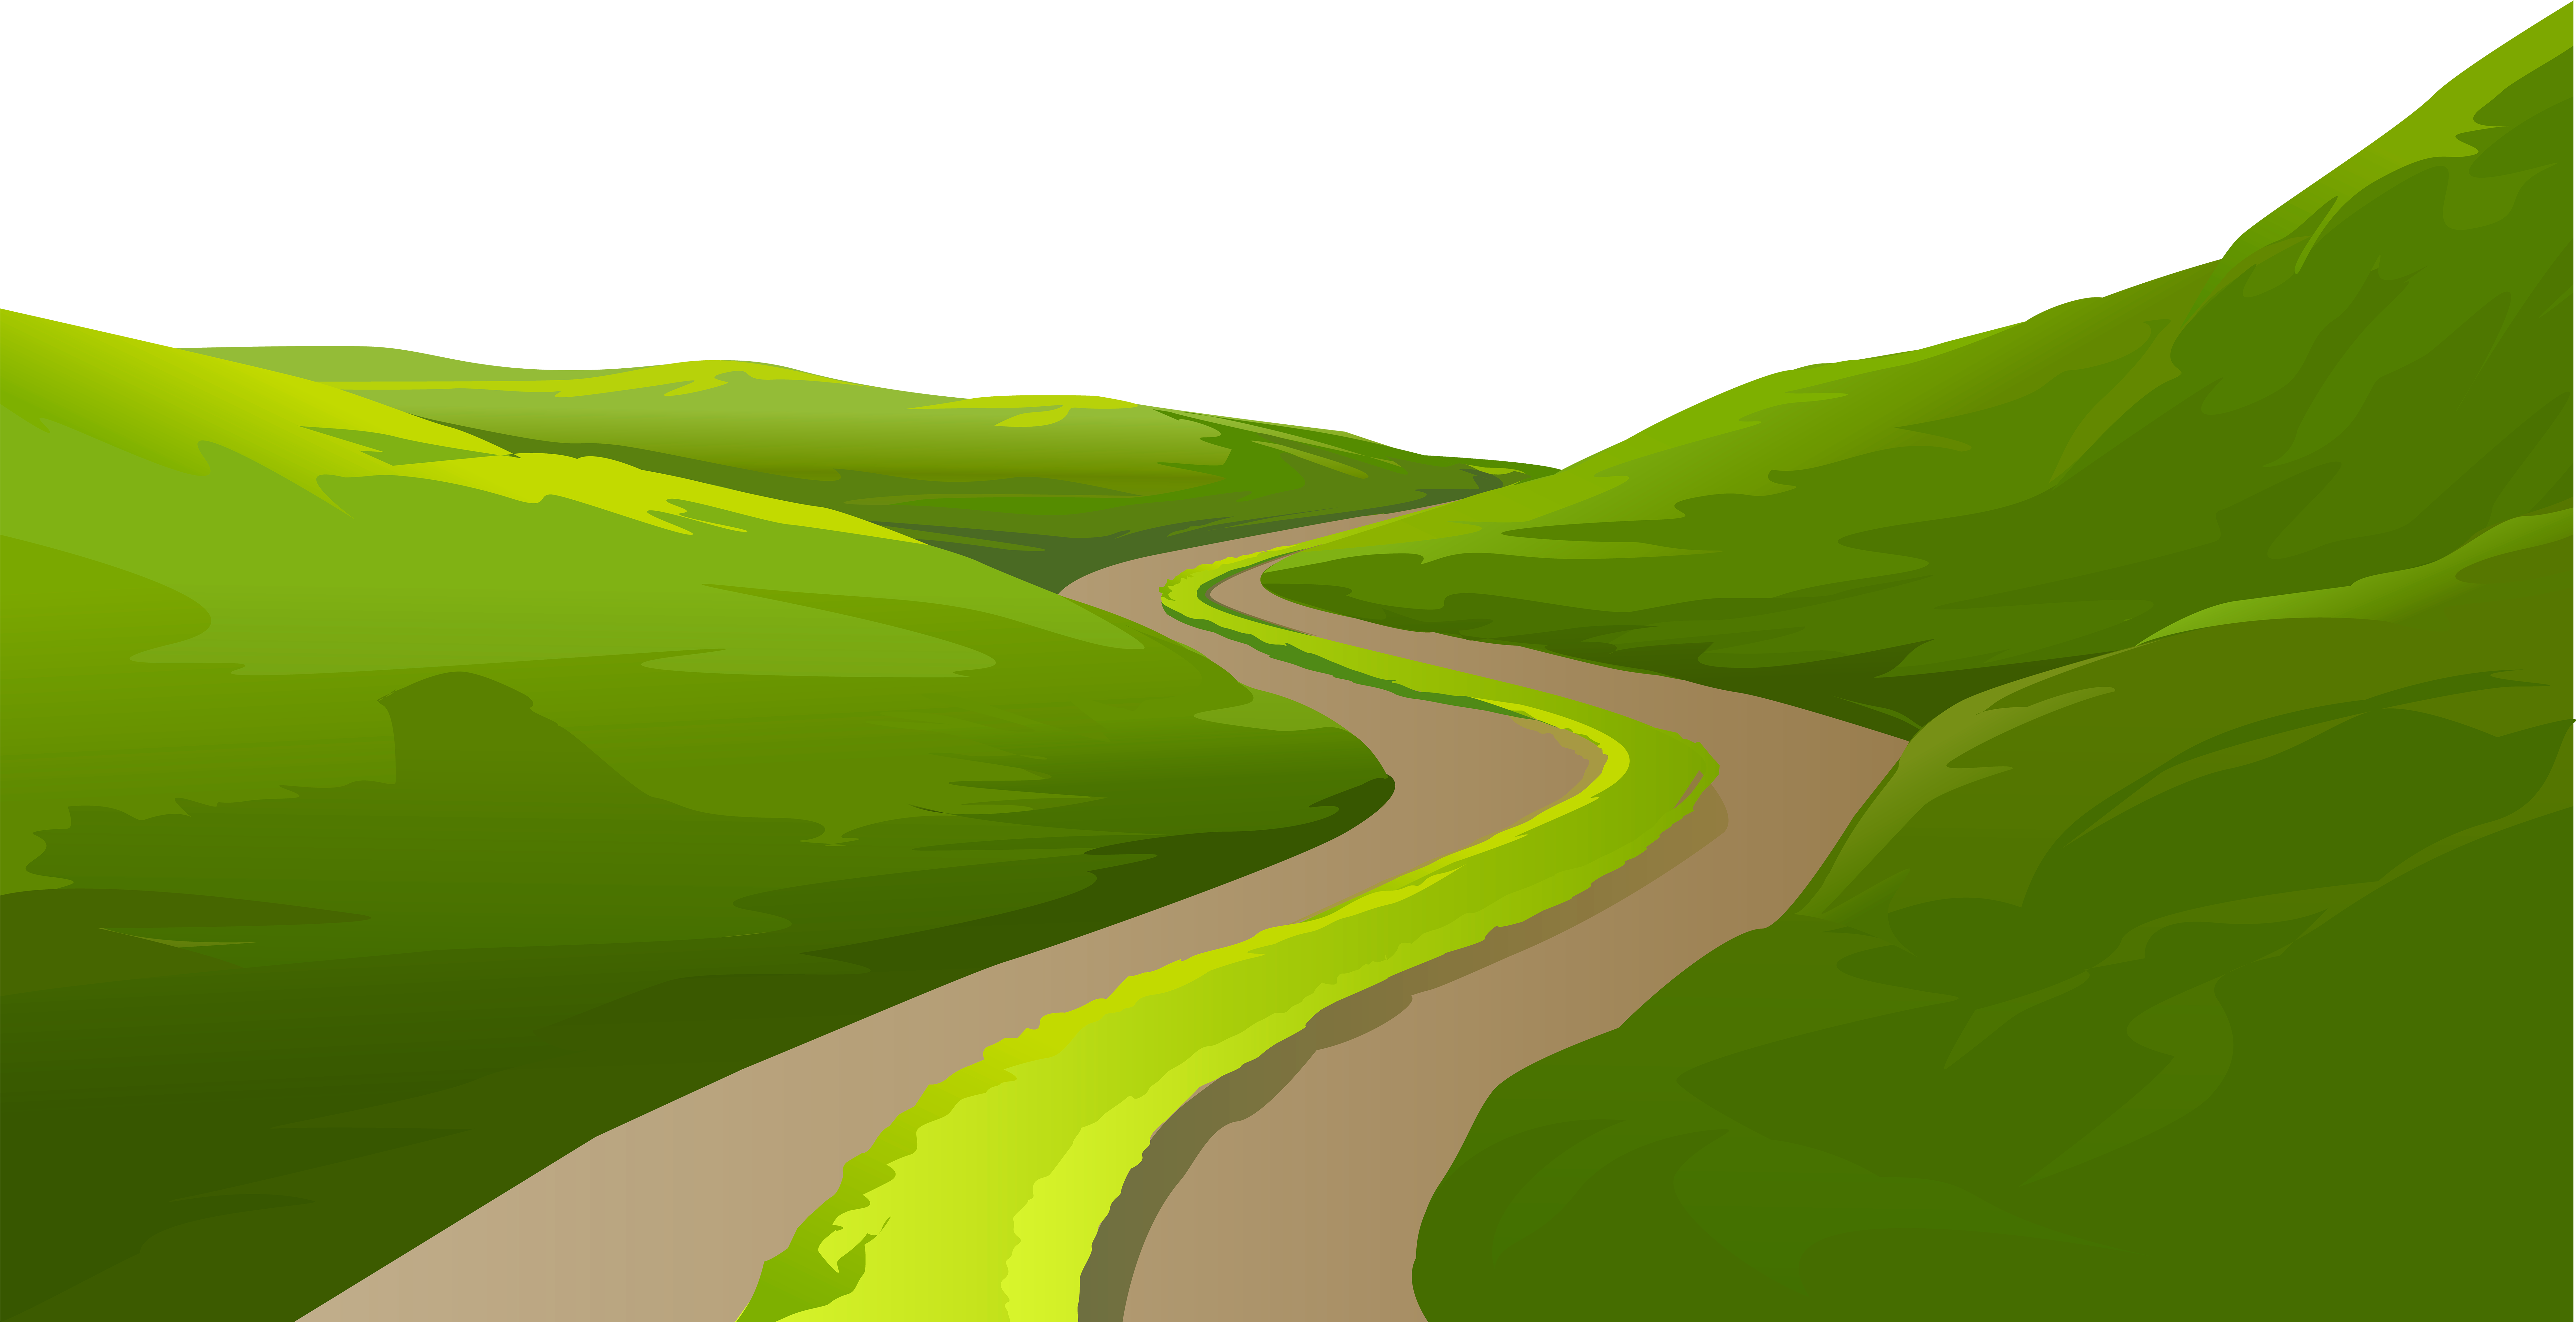 Ground clipart hill. Hd clip art png